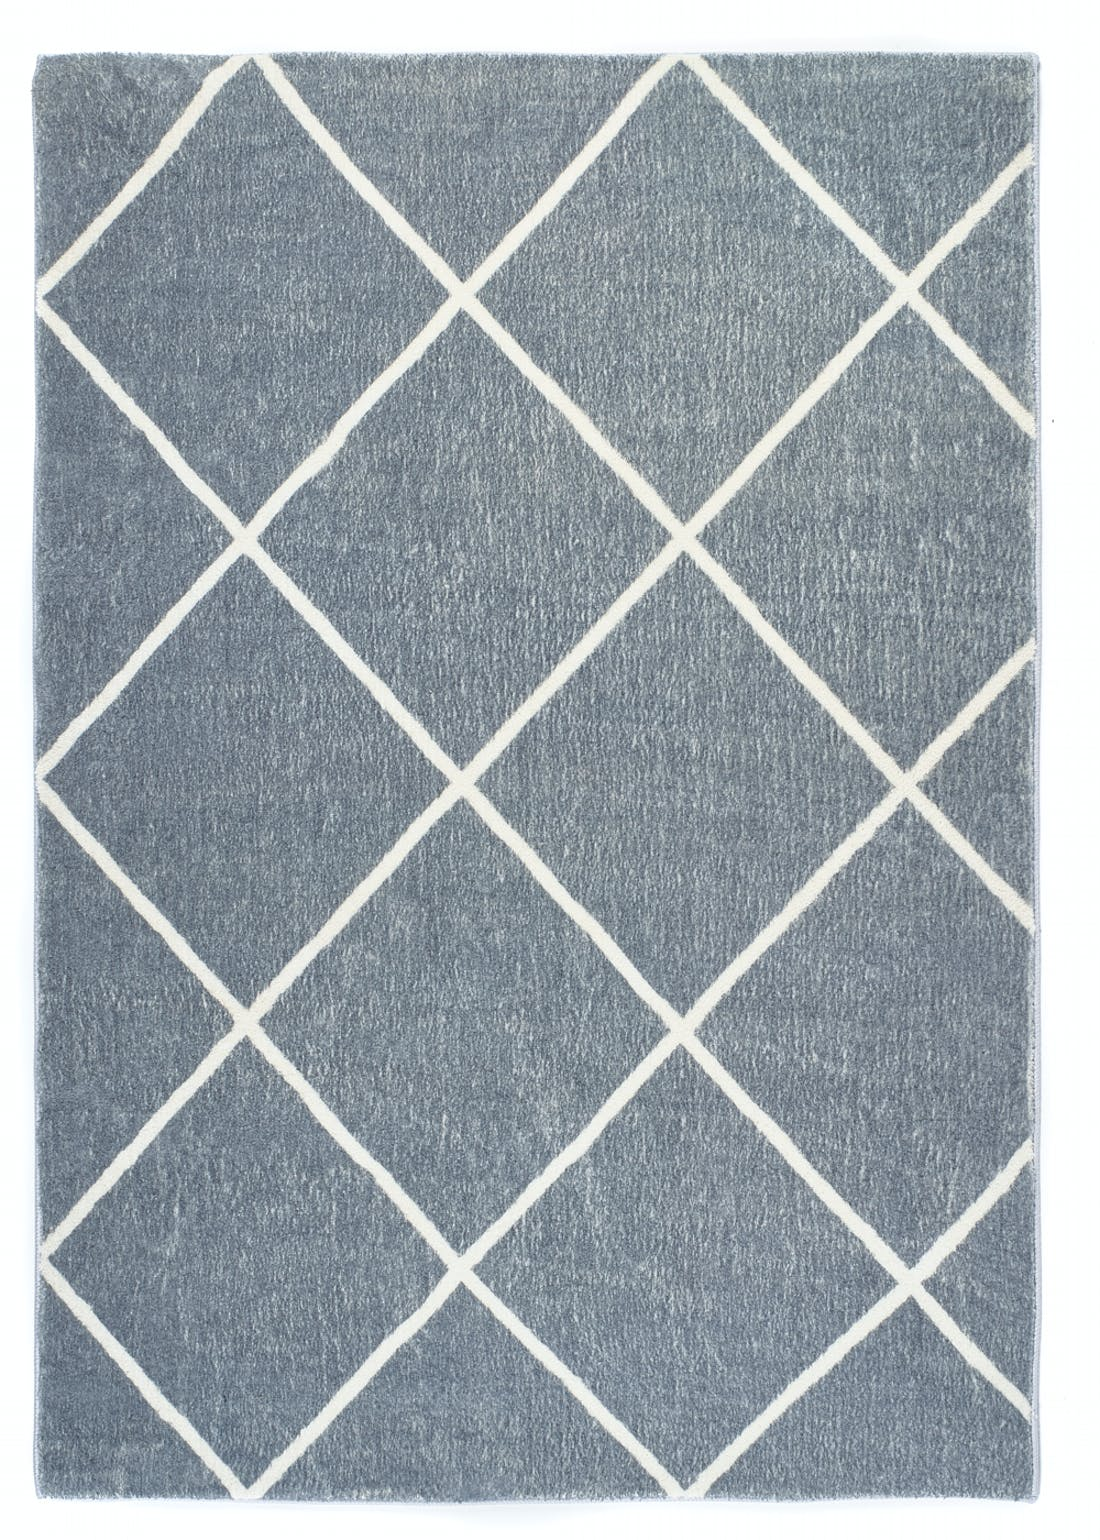 Berber Diamond Rug (Large)